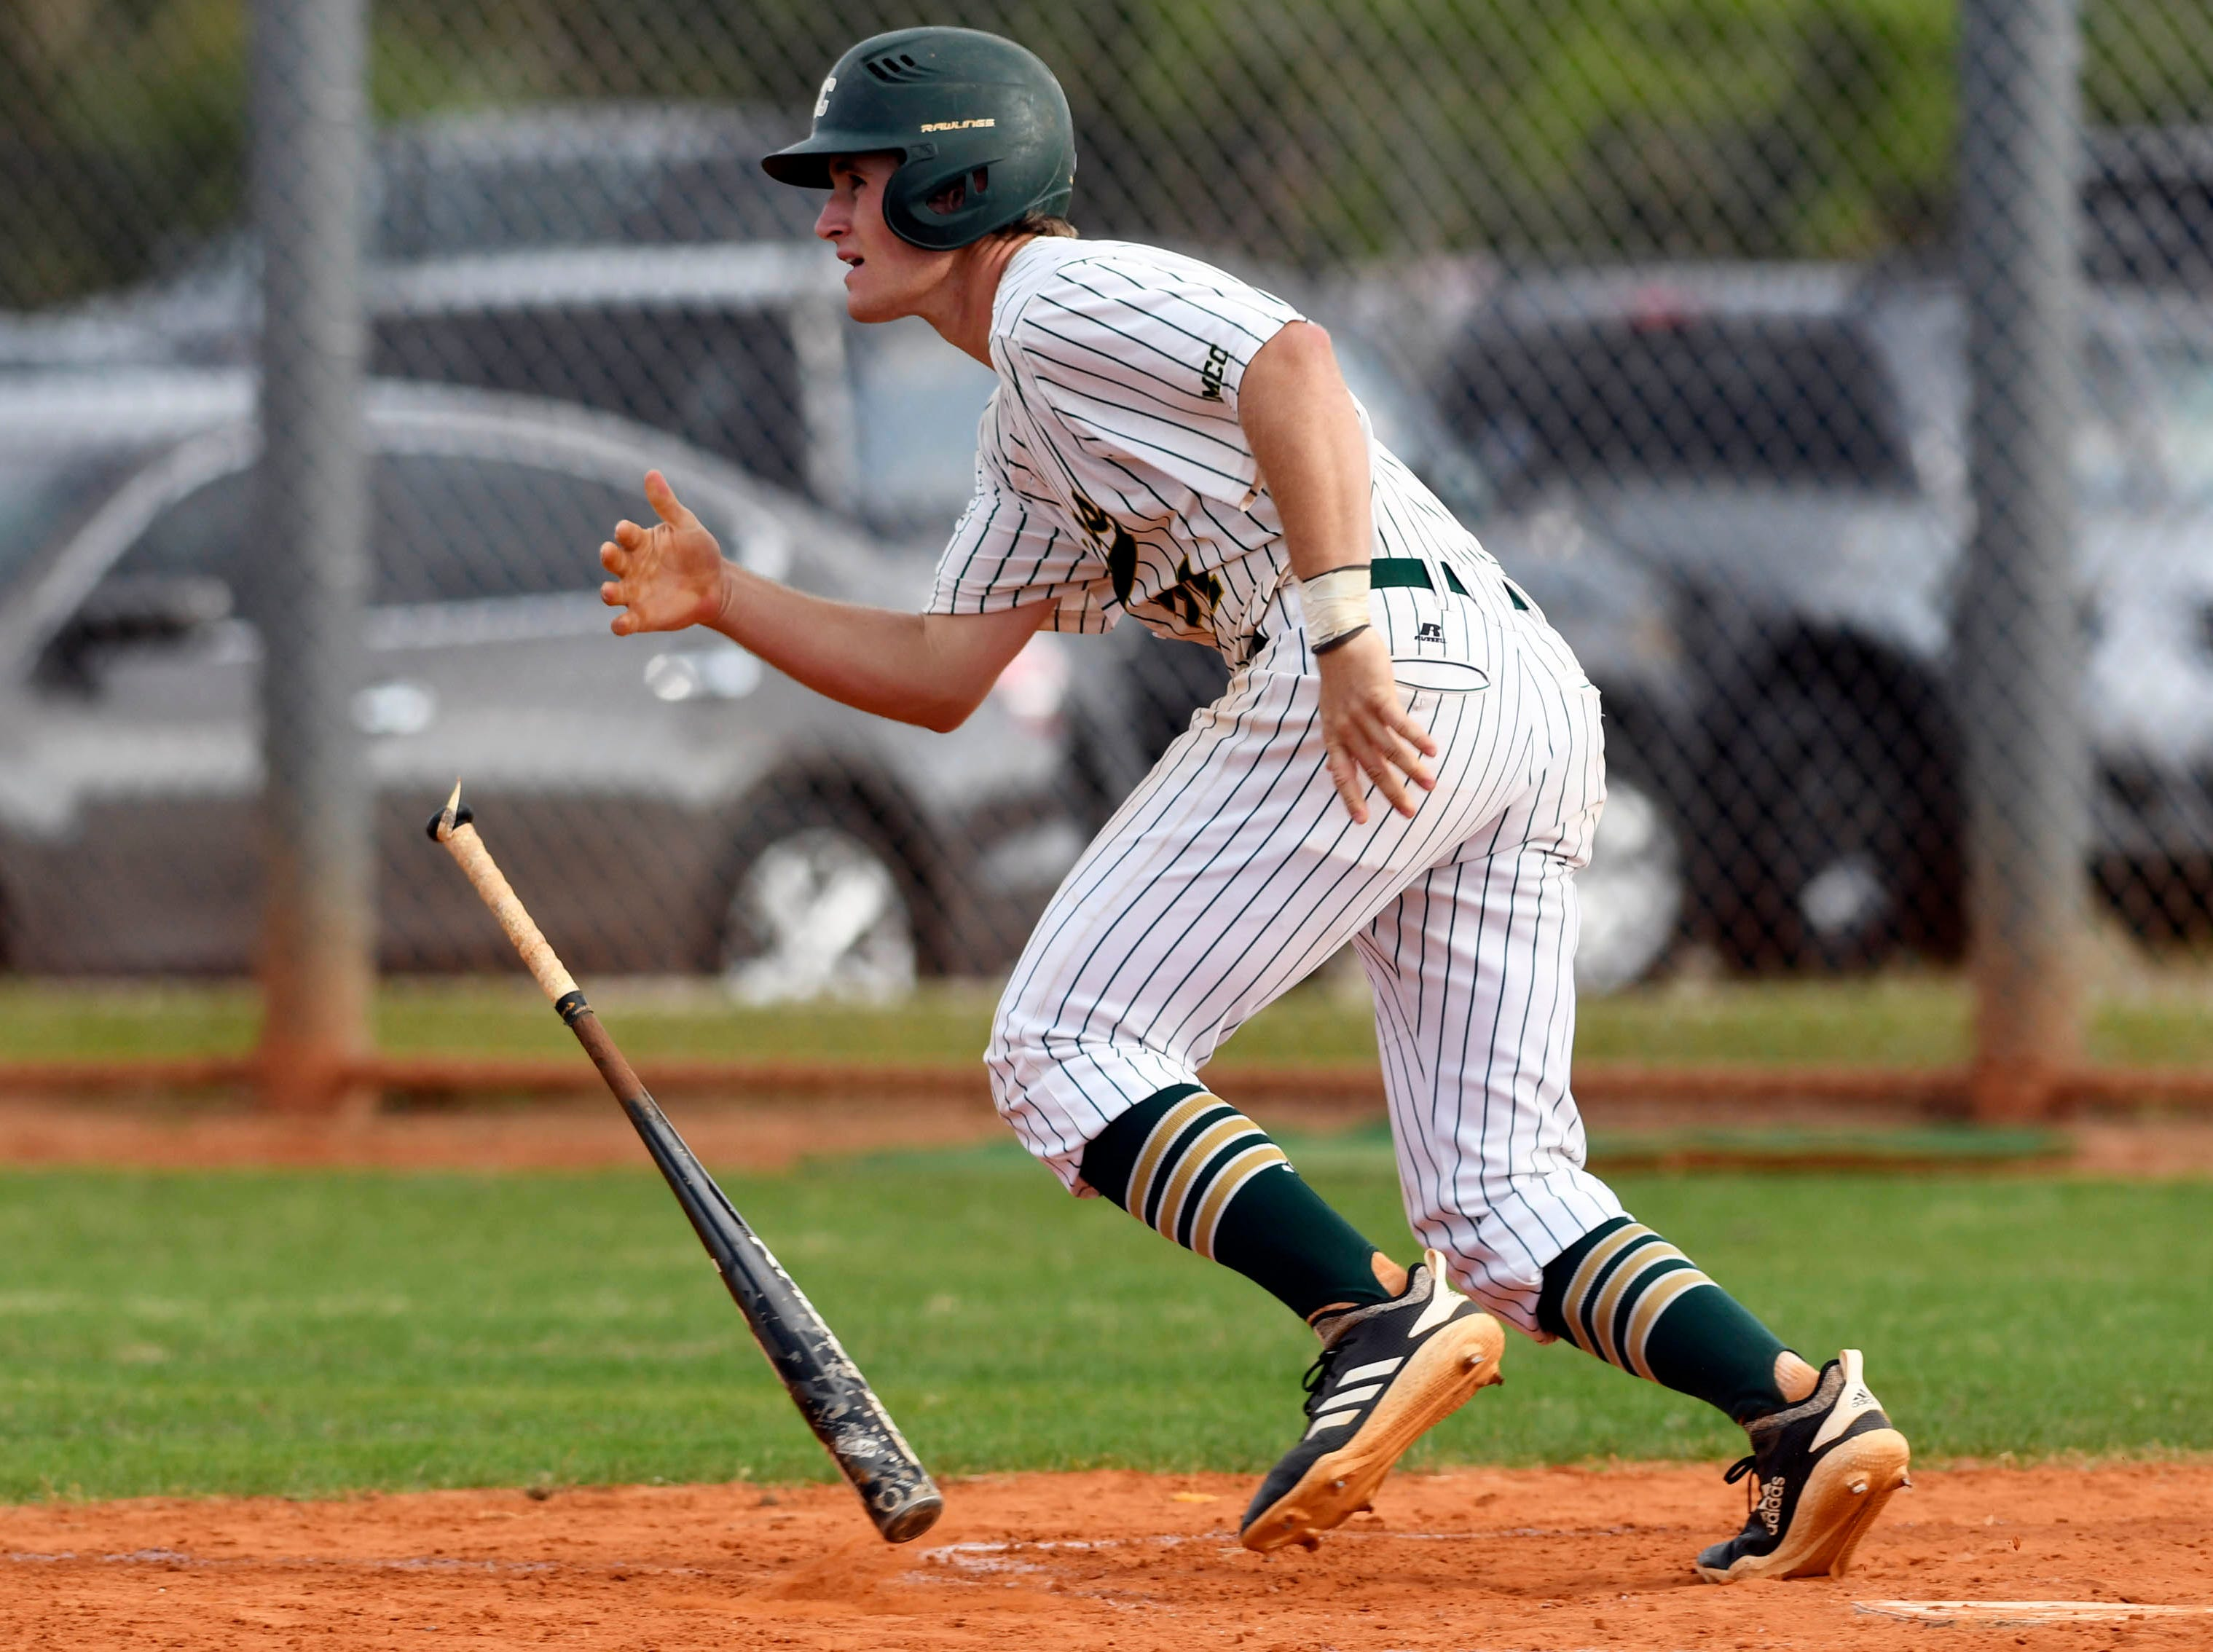 Jackson Taylor of MCC gets a hit during Tuesday's game against Satellite.